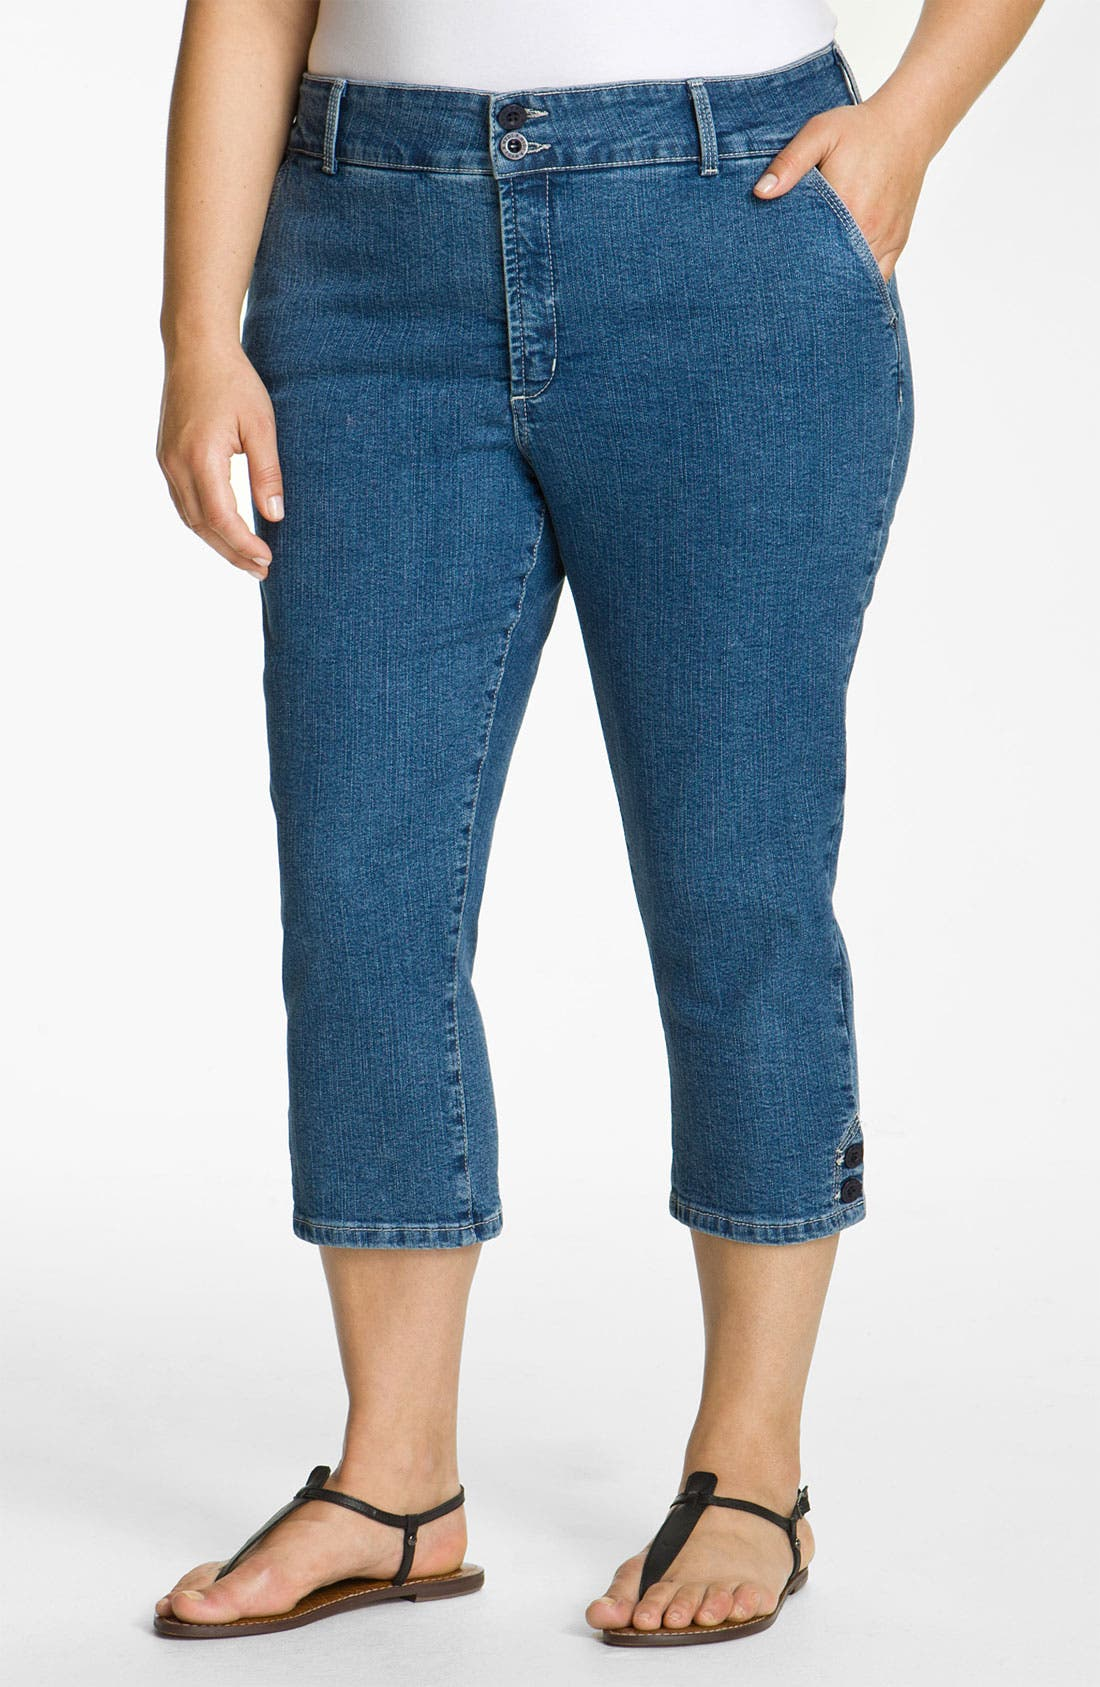 Alternate Image 1 Selected - NYDJ 'Sammie' Crop Stretch Jeans (Plus)